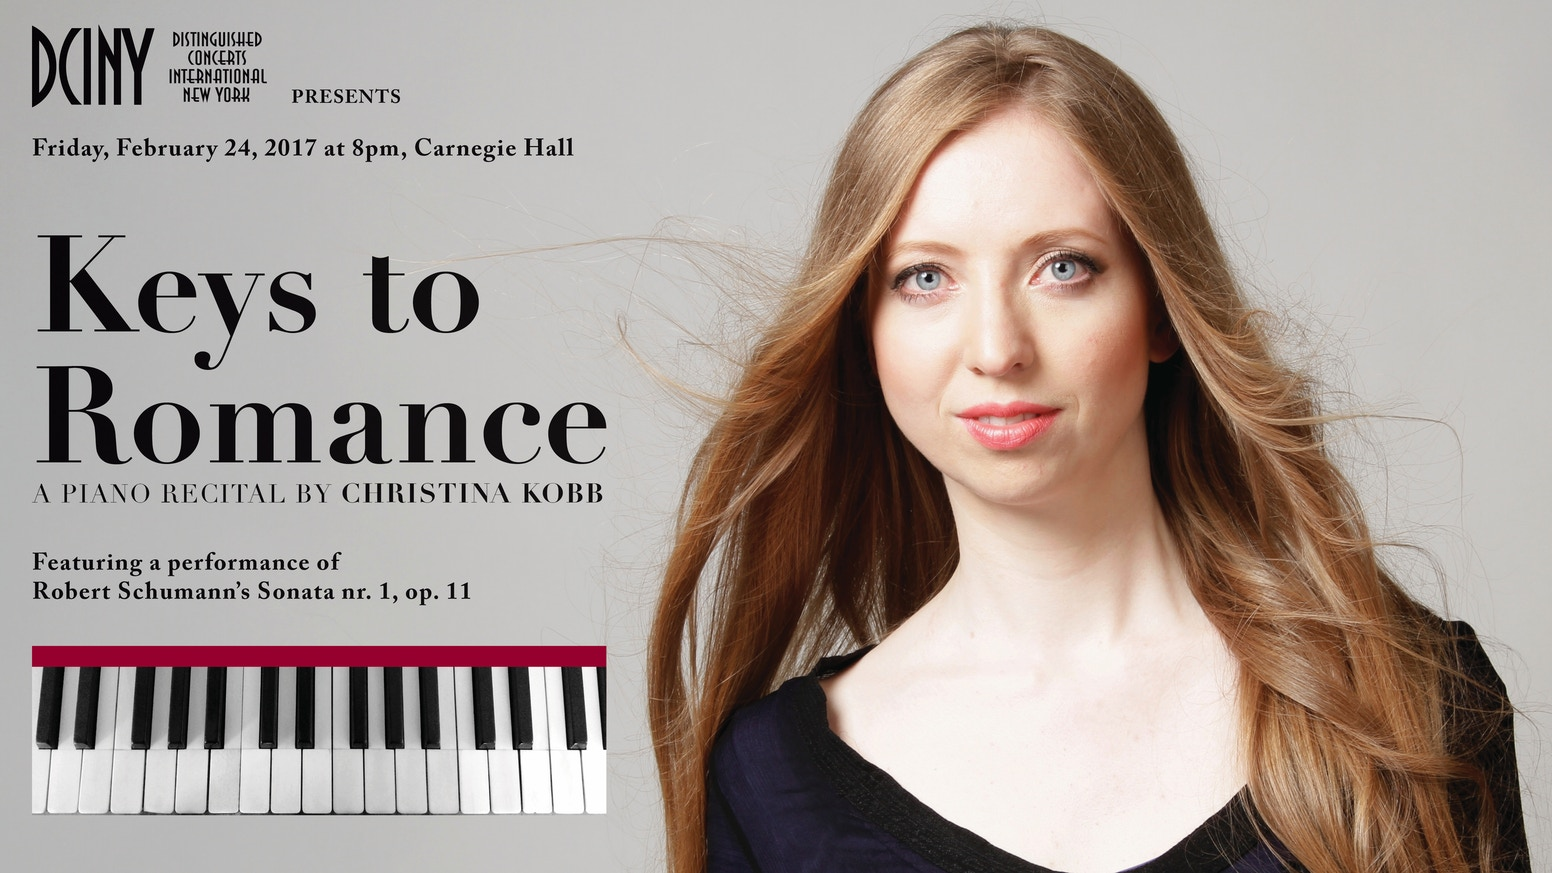 Join Christina Kobb, expert on 19th-century piano technique, as she journeys to the Carnegie Hall stage with DCINY.